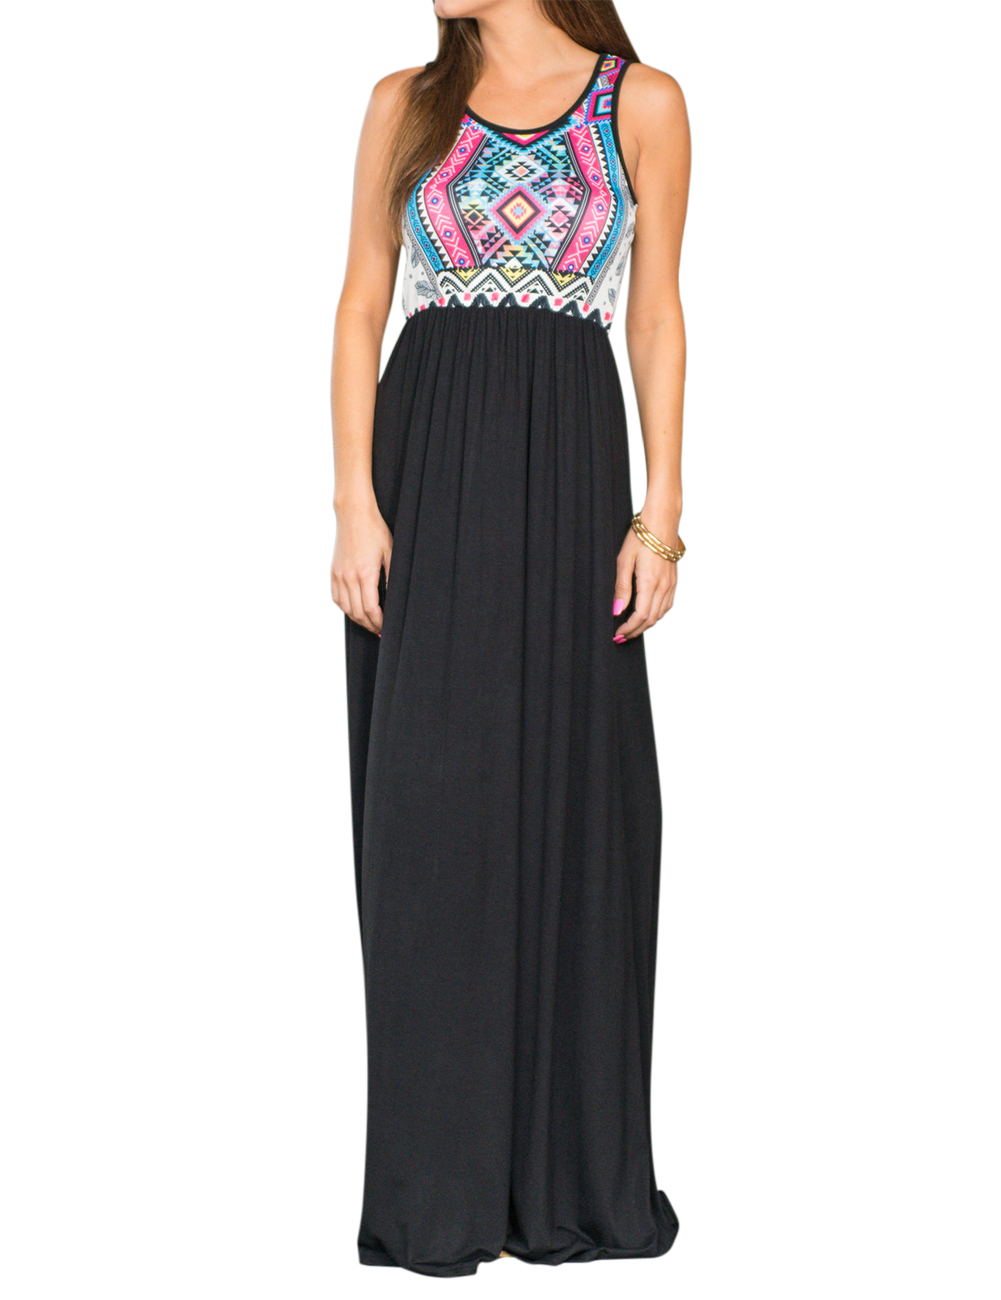 Liebeye Women Tank Maxi Dress